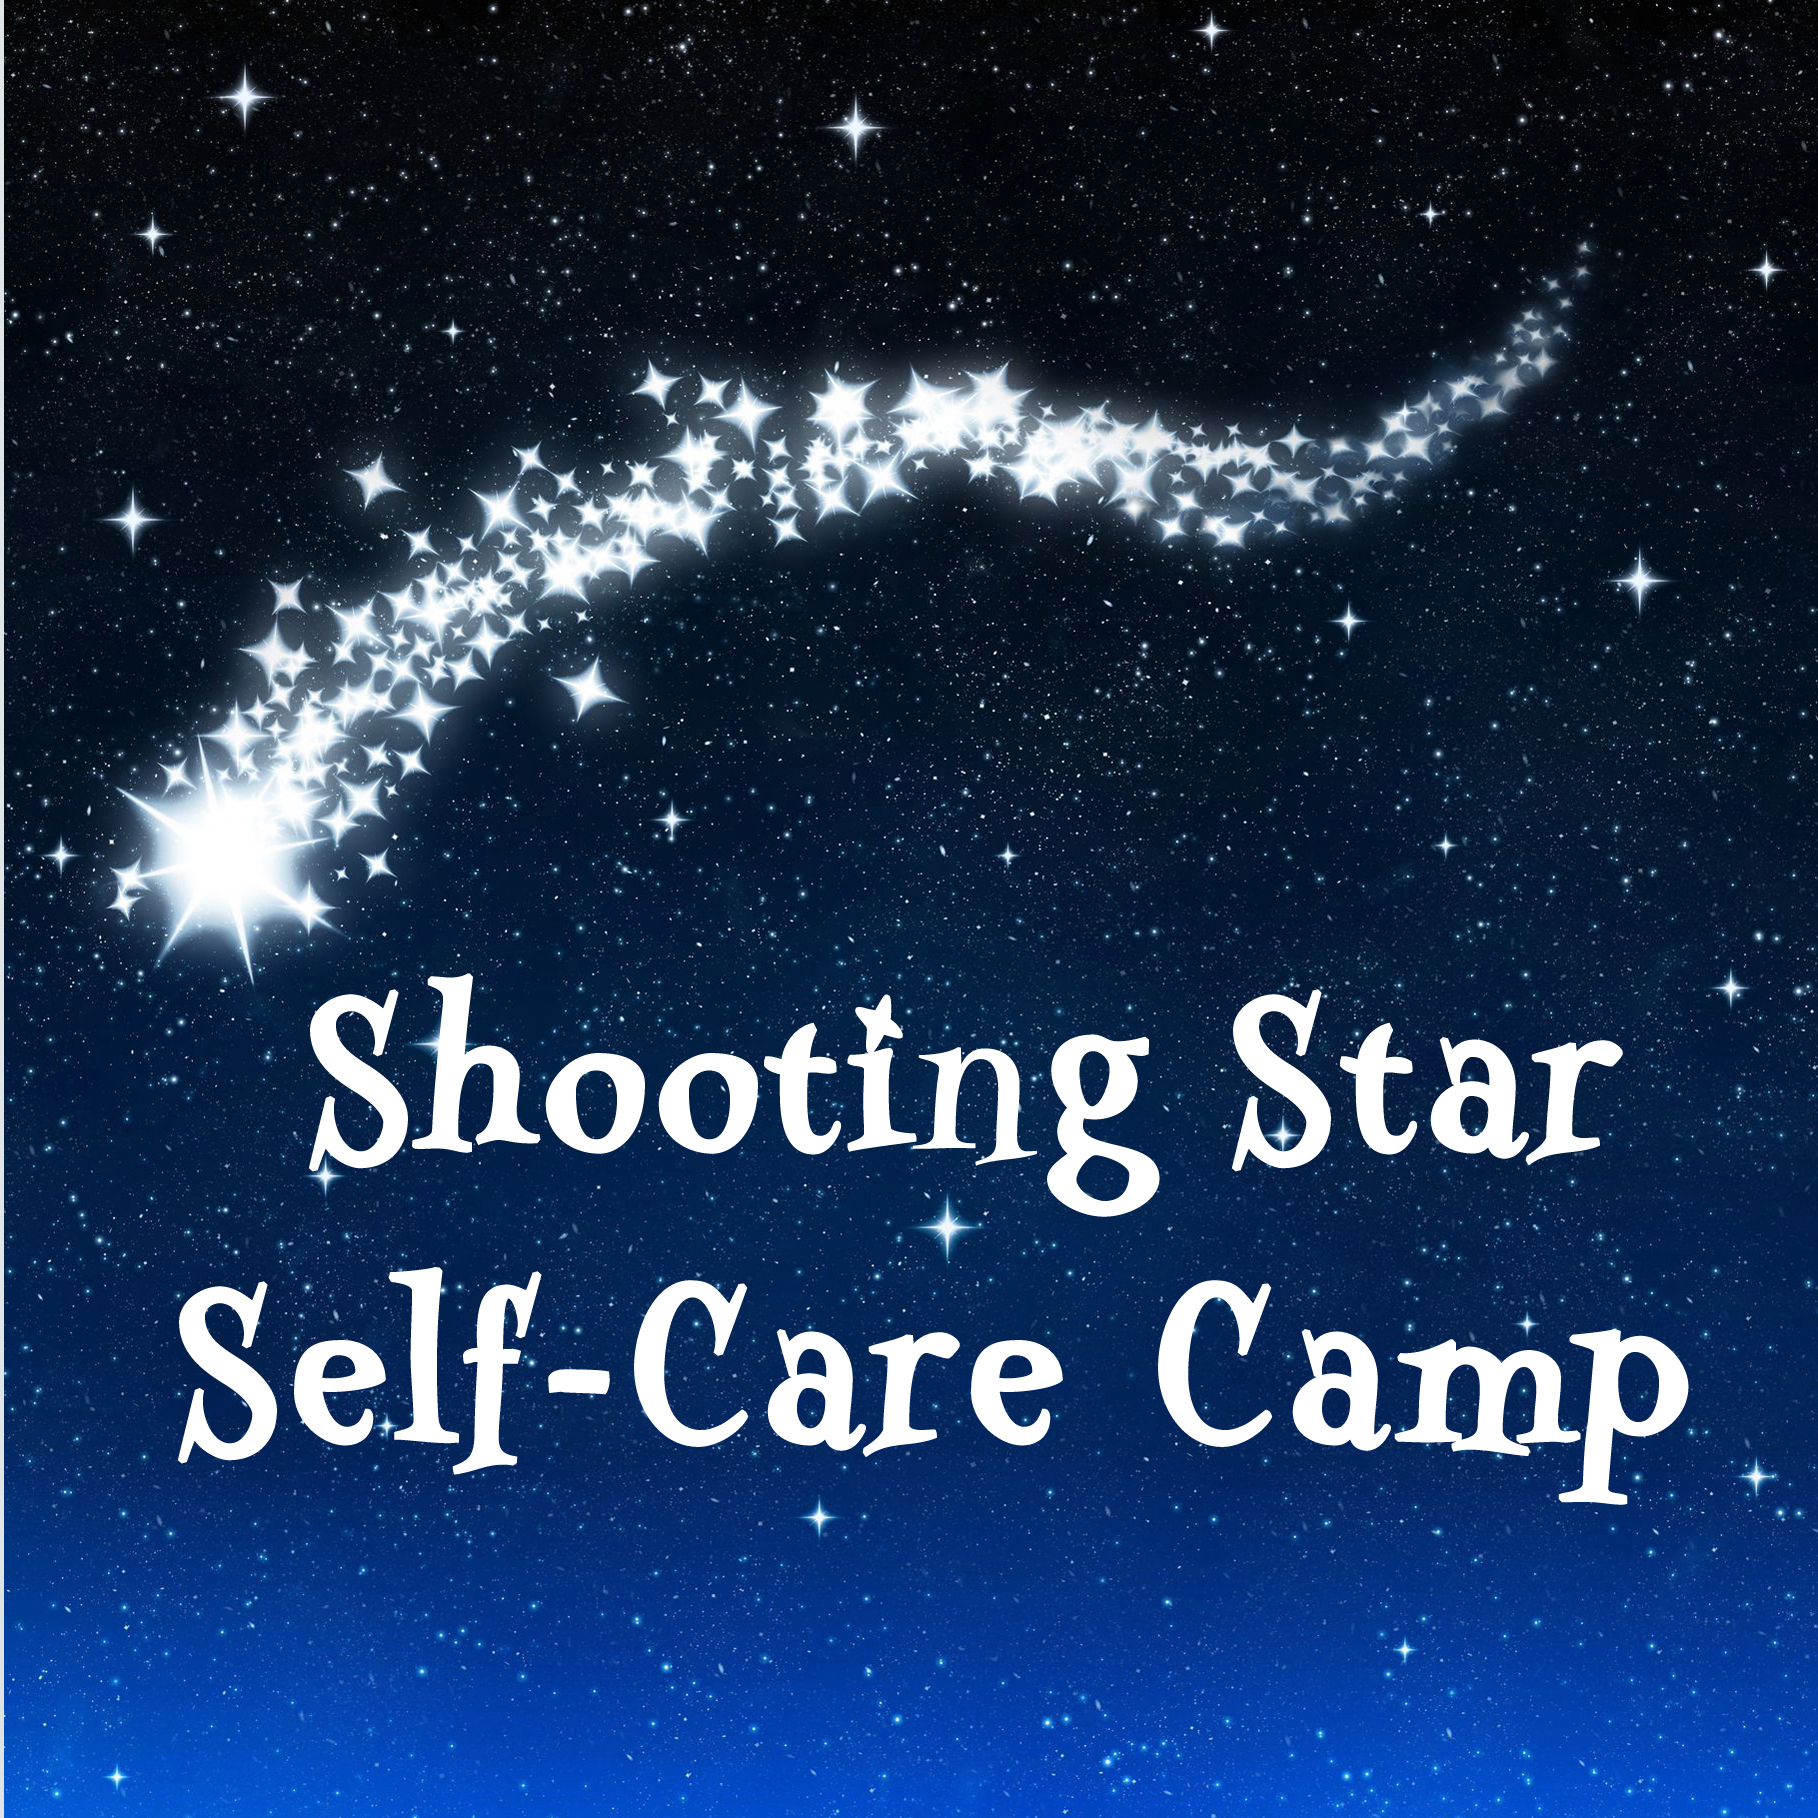 Shooting Star Camp star-- square--1800X1800px--7311849_l.jpg